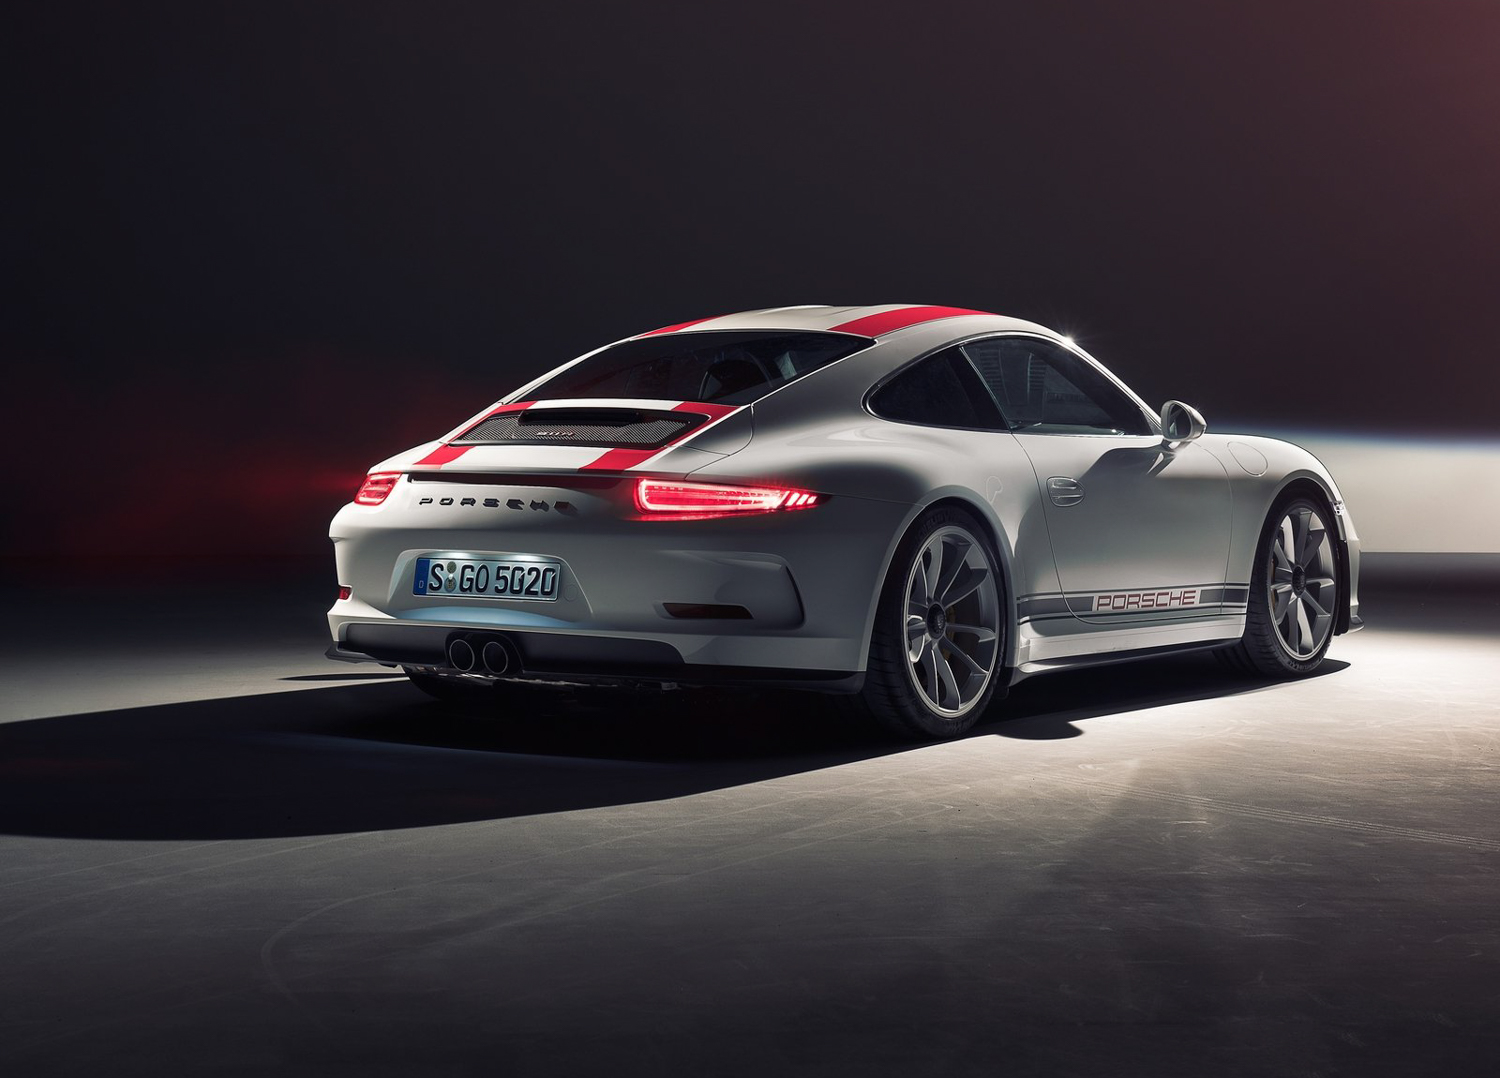 Report: Porsche mulling subscription service to dissuade limited-edition speculators